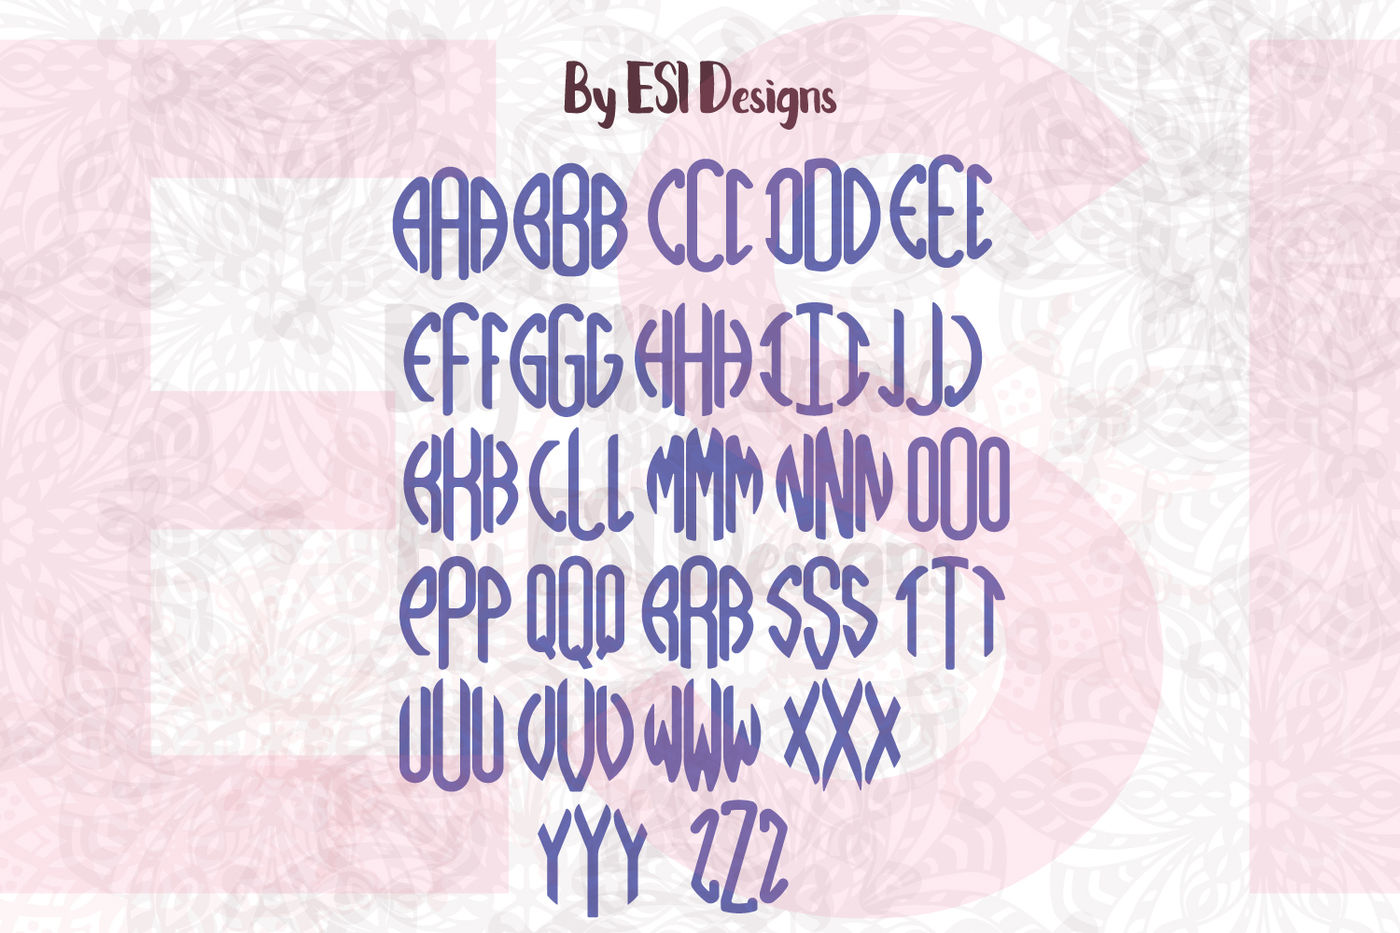 Smooth Circle Monogram Alphabet By Esi Designs Svg Dxf Eps Png By Esi Designs Thehungryjpeg Com